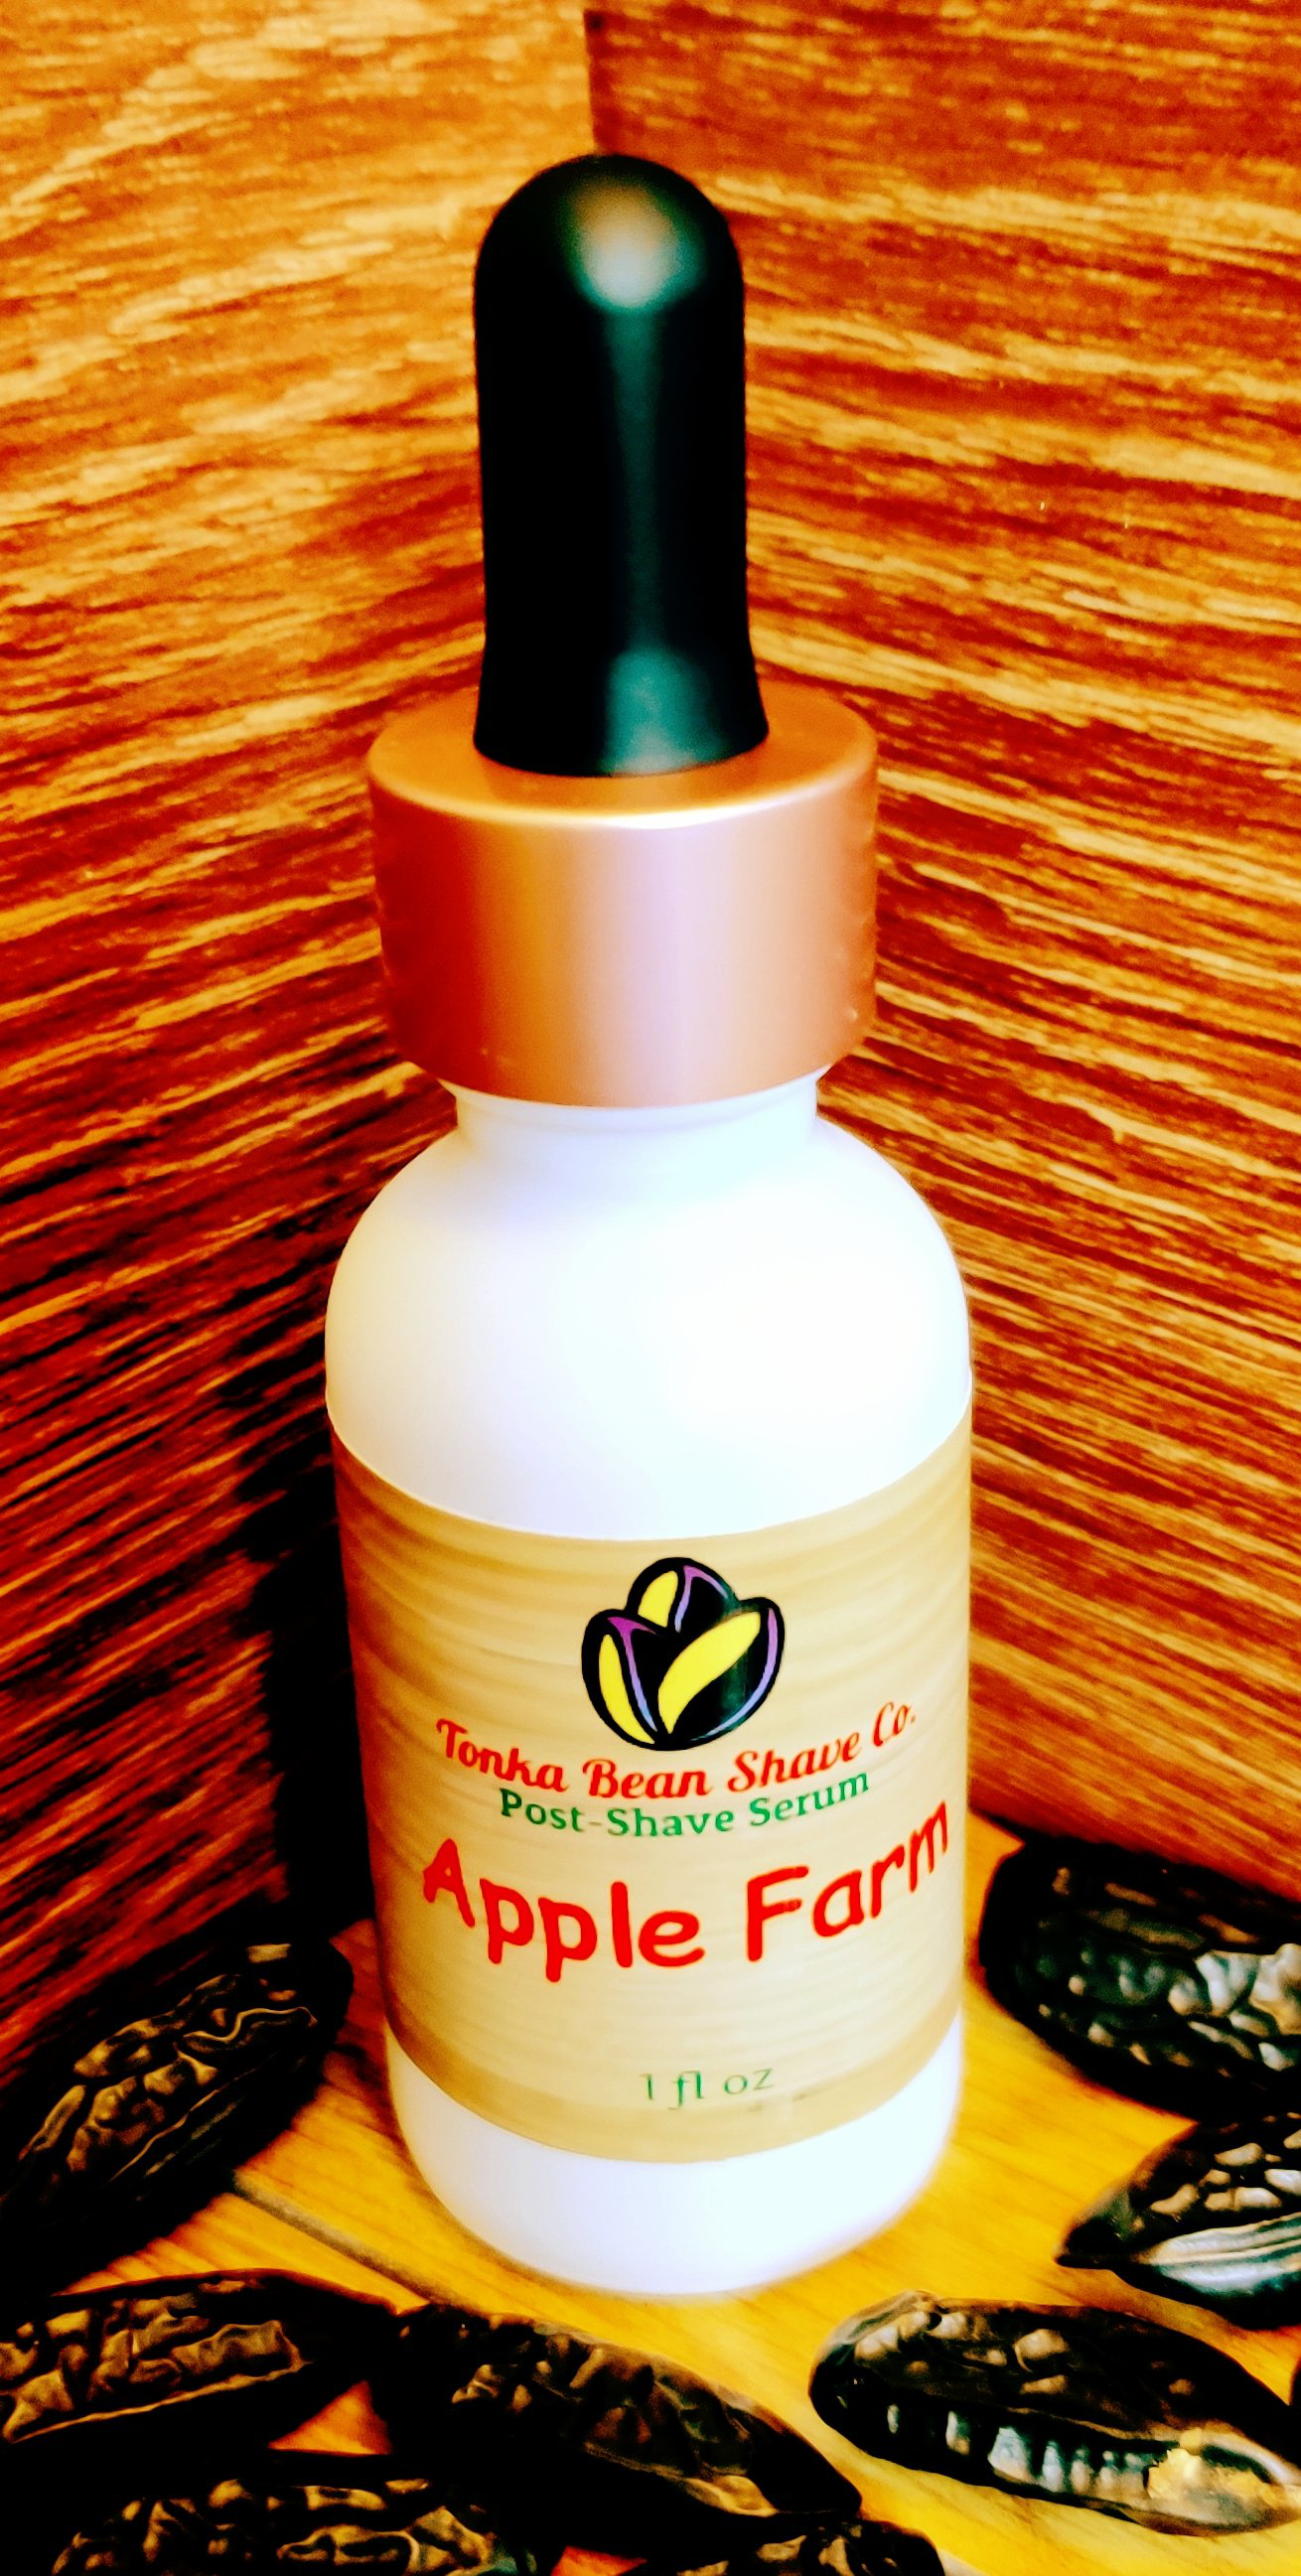 Tonka Bean Shave Co. - Apple Farm - Shave Serum image